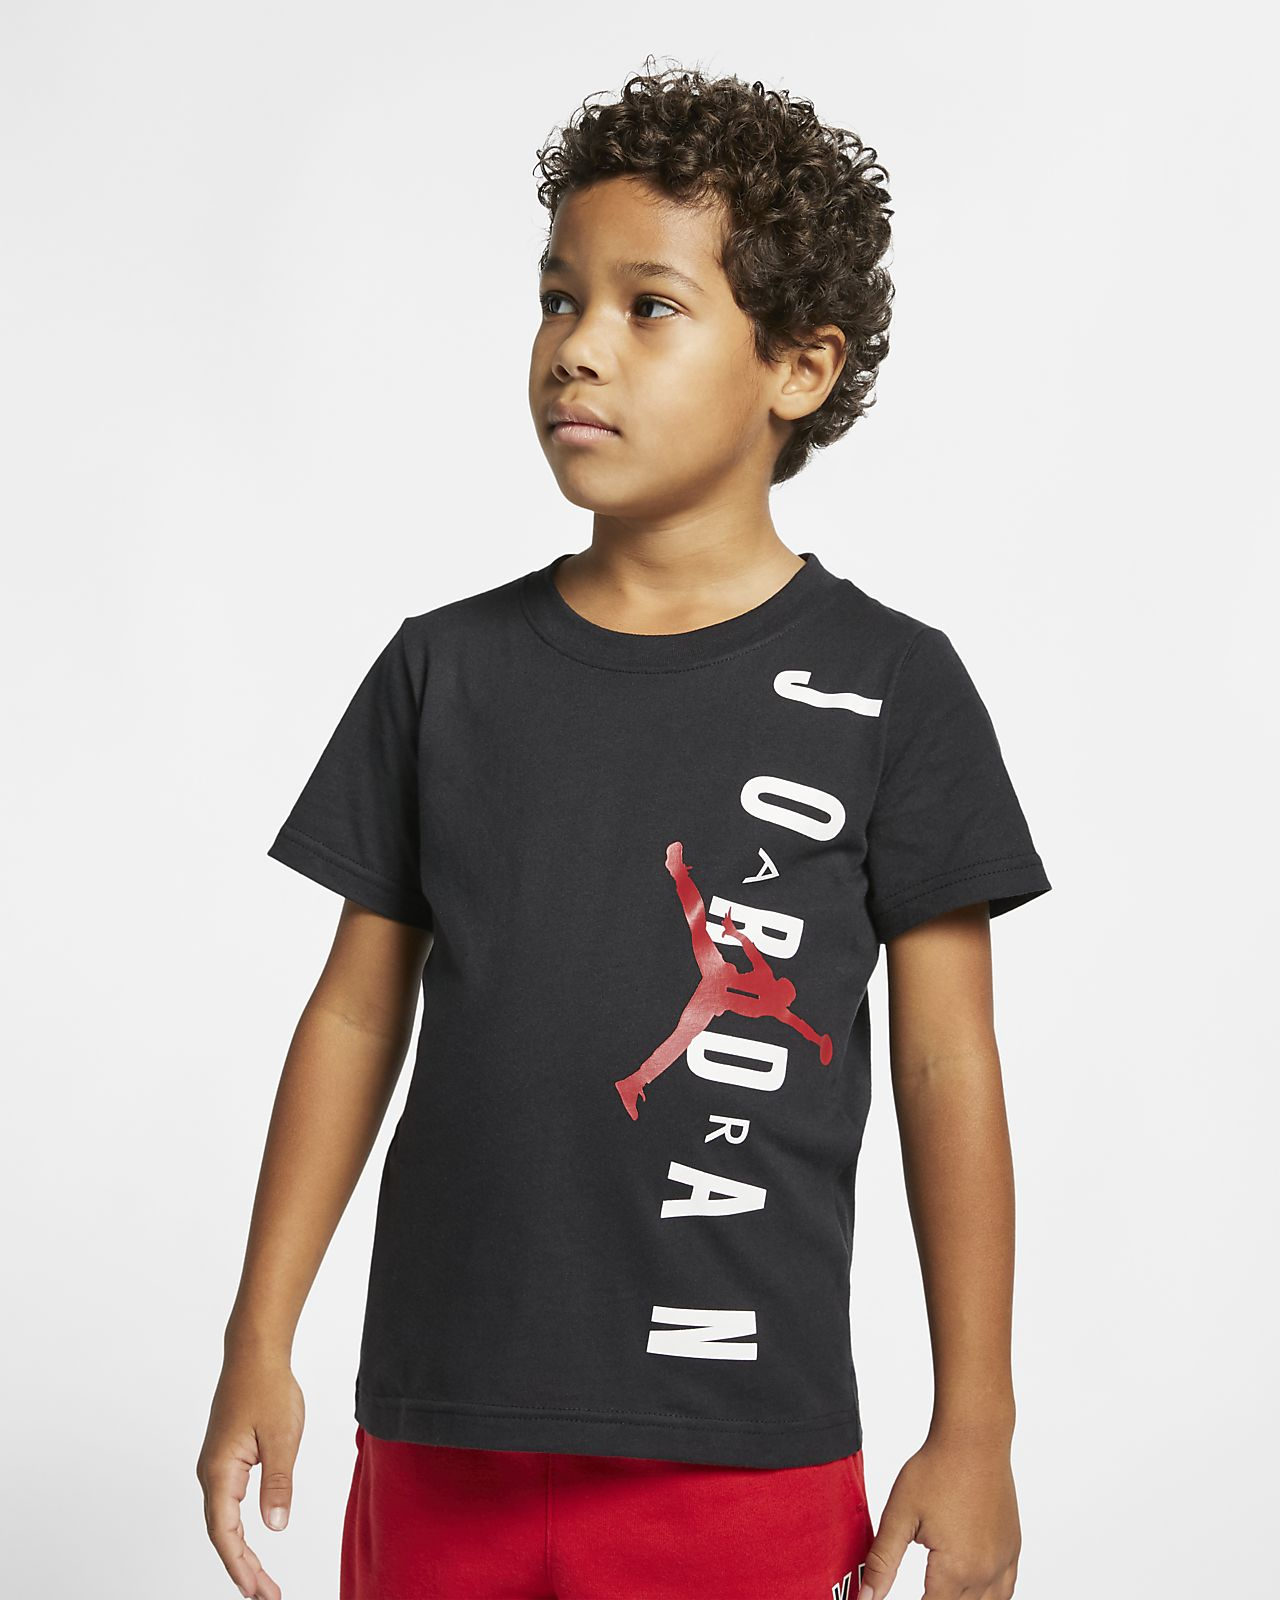 96f484aafaeea3 Jordan Jumpman Air Younger Kids  T-Shirt. Nike.com AT